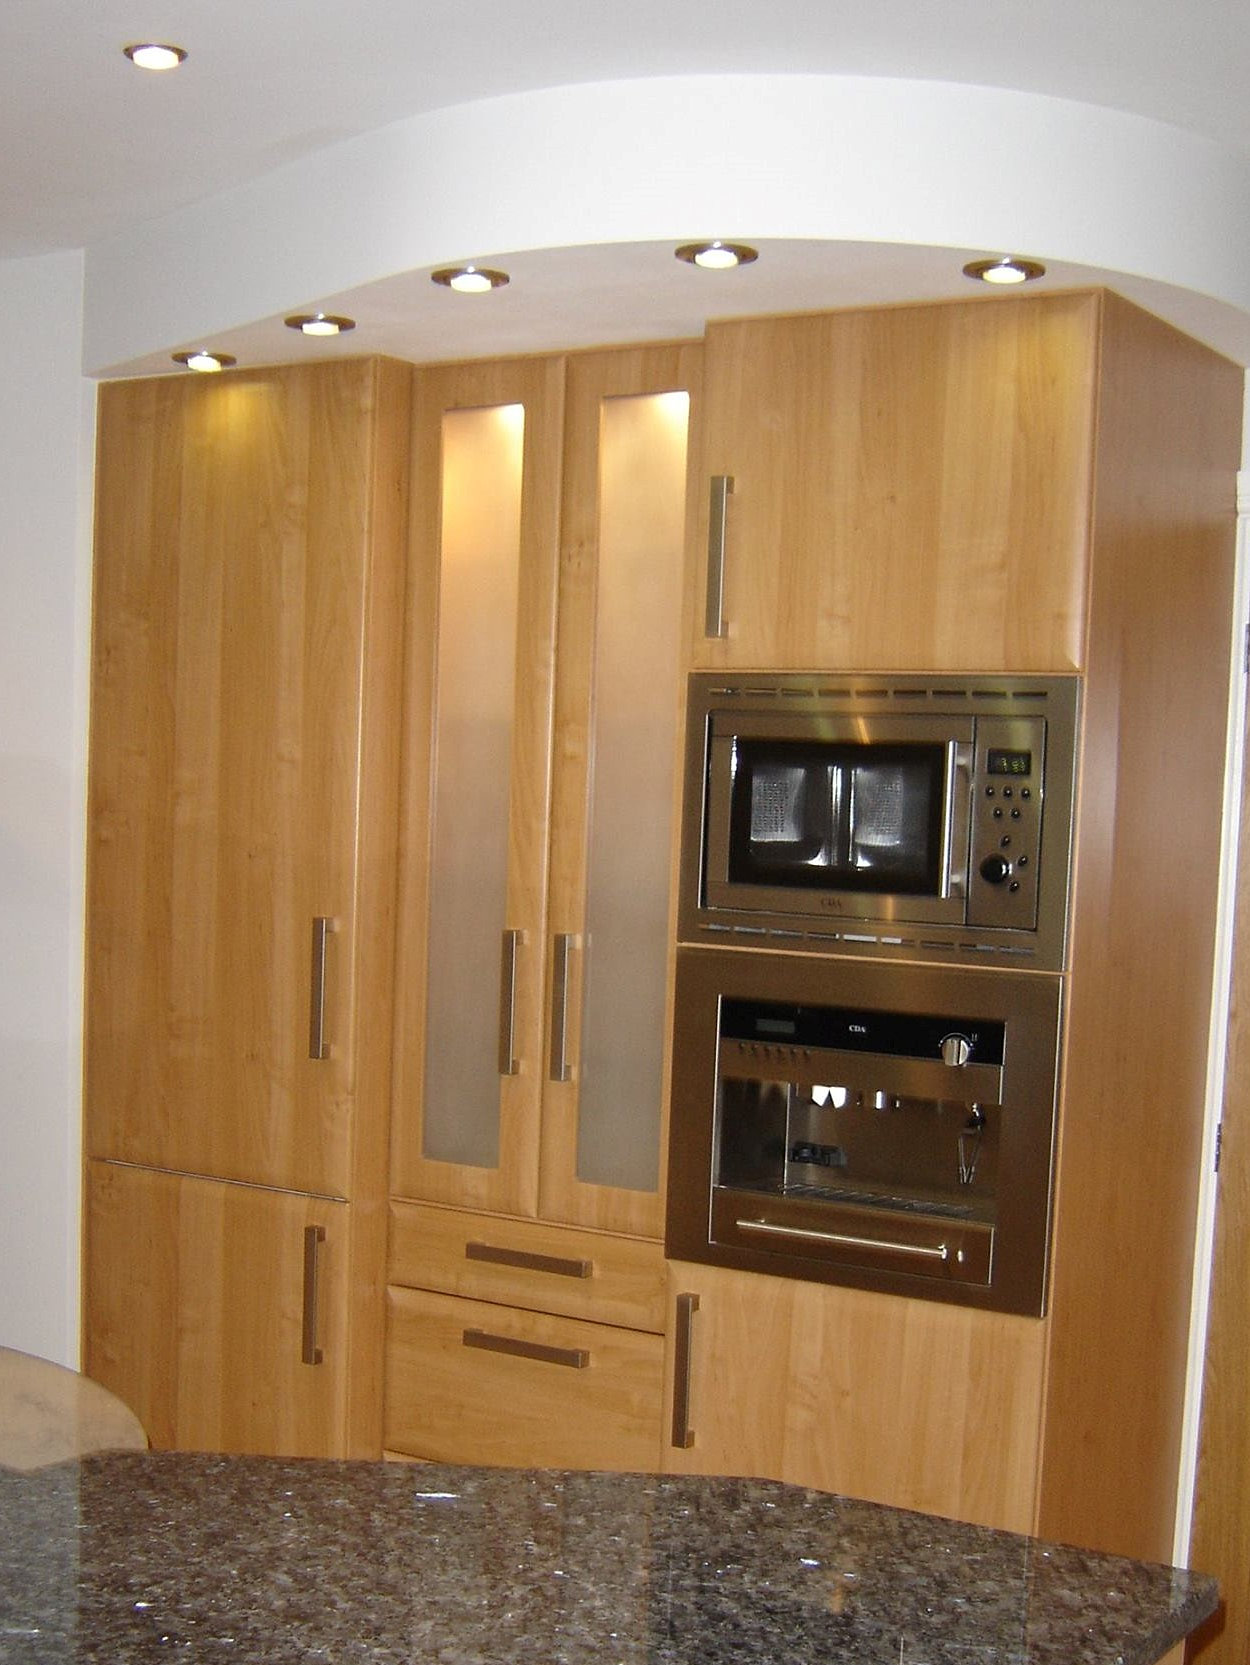 Kitchens and Bedrooms Stoke on Trent Paul Brown | Kitchen unit with ...